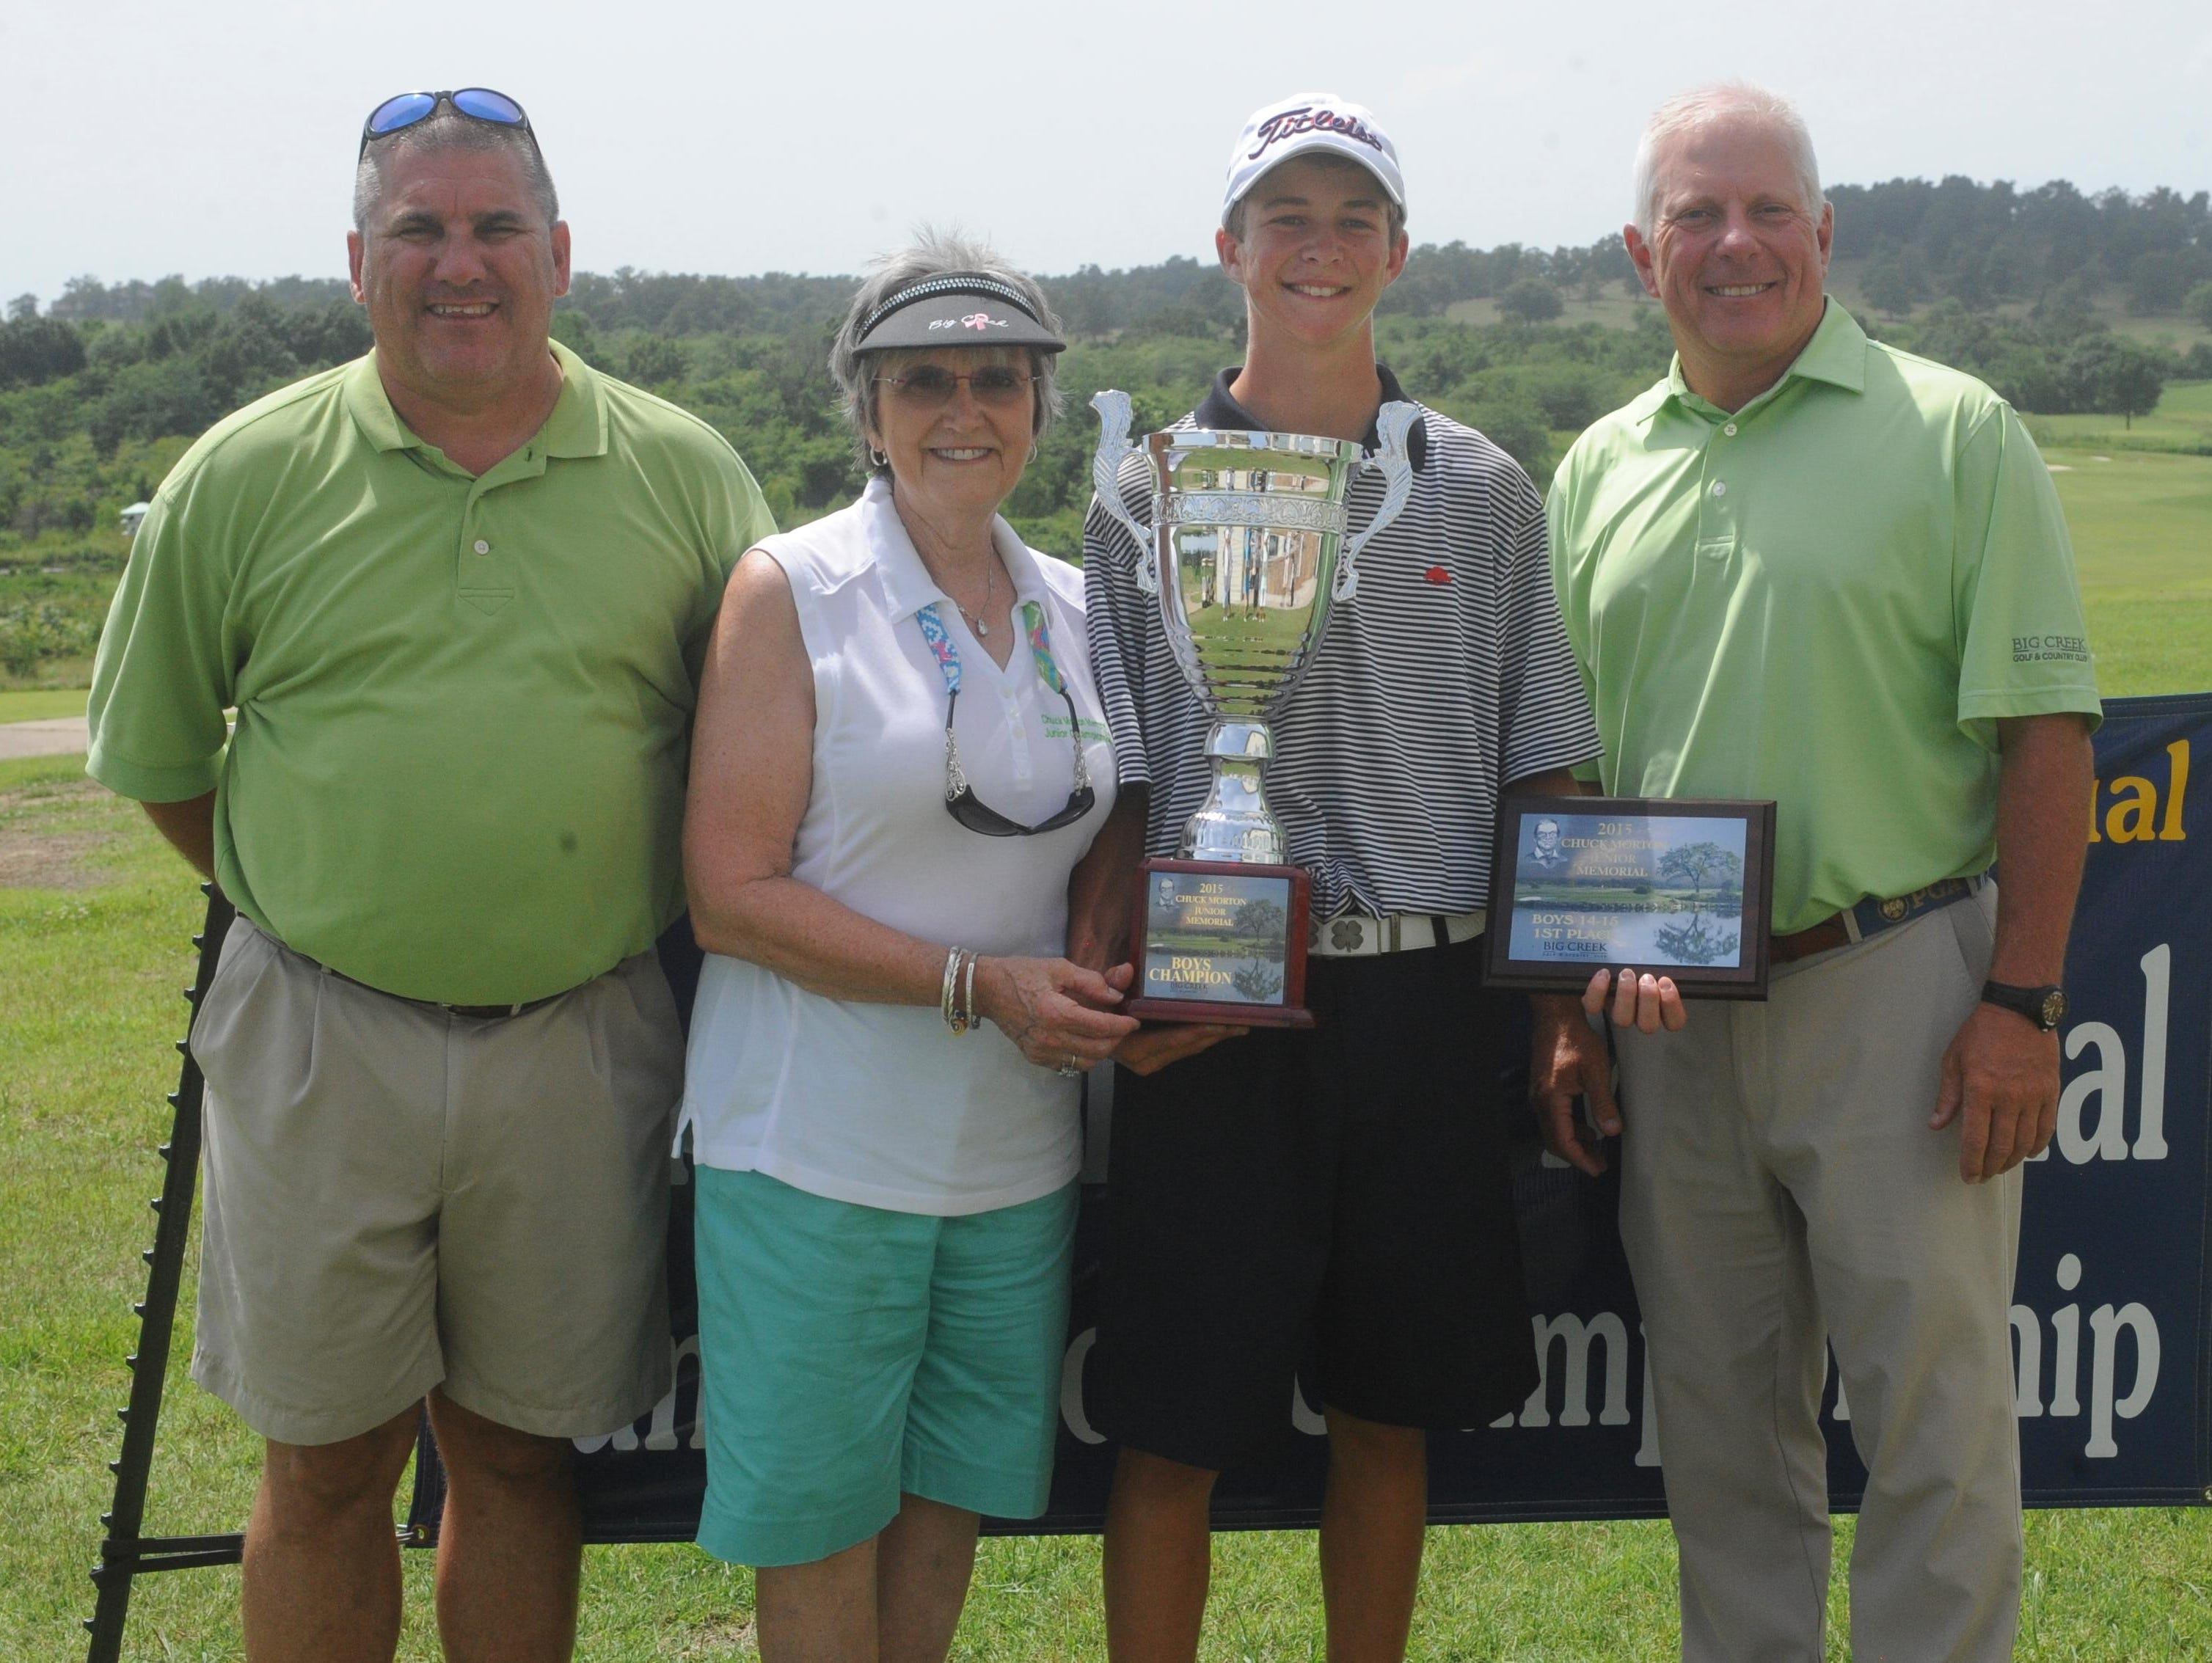 Jonesboro's Wil Gibson, third from left, holds both the overall championship trophy and the 14-15 age division championship trophy after winning the Chuck Morton Memorial Junior Golf Tournament at Big Creek Golf & Country Club. Shown with Gibson are: from left, tournament director Mark Morton, tournament director Beverly Morton, and Big Creek head professional Todd Dunnaway.